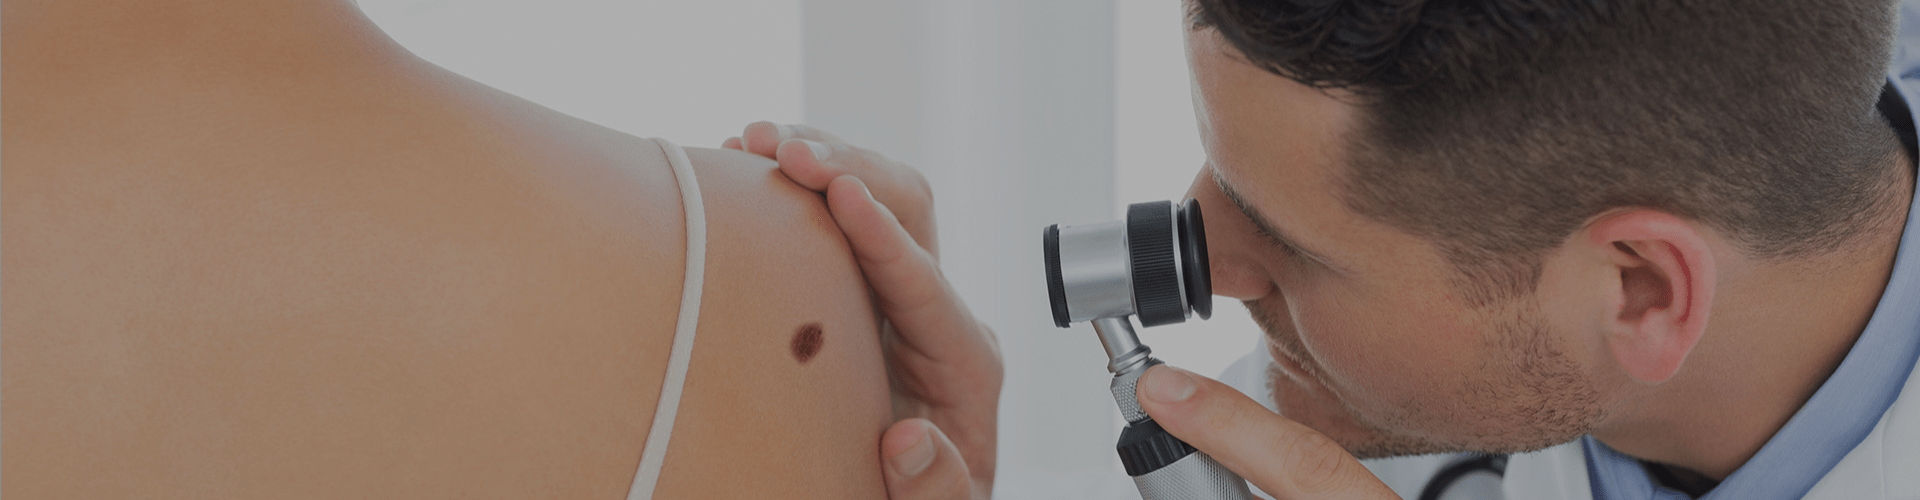 Doctor checking the mole on a person's back